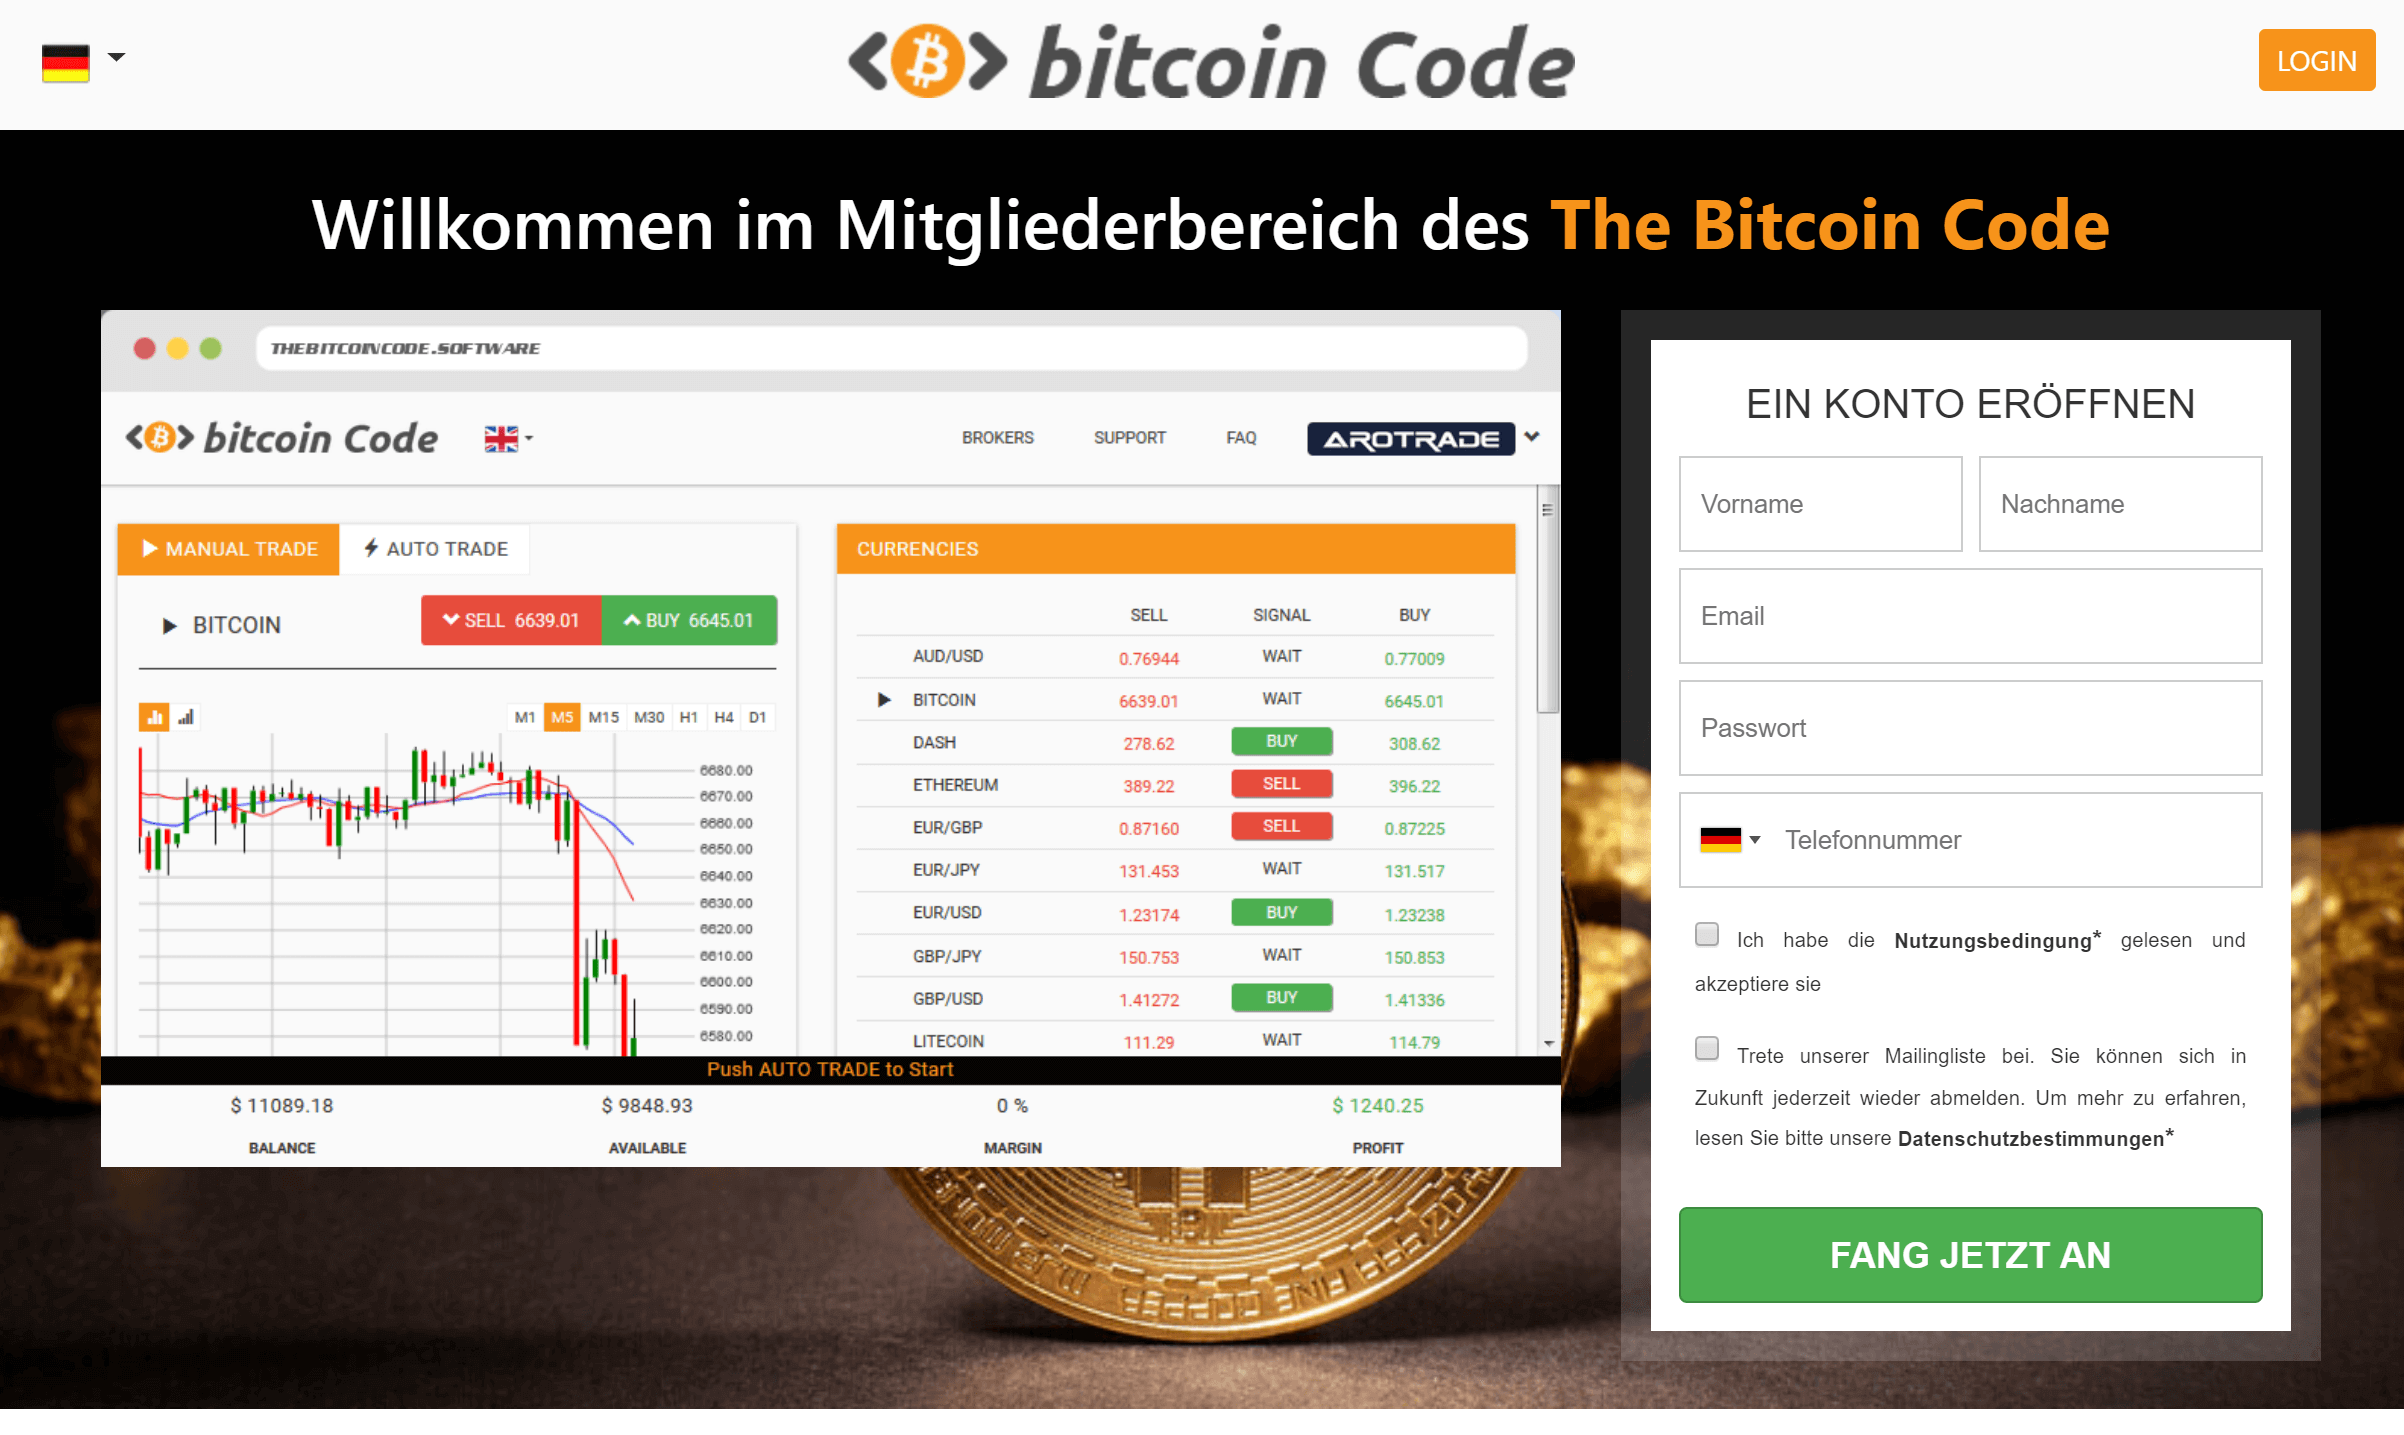 Bitcoin Code Login Deutsch